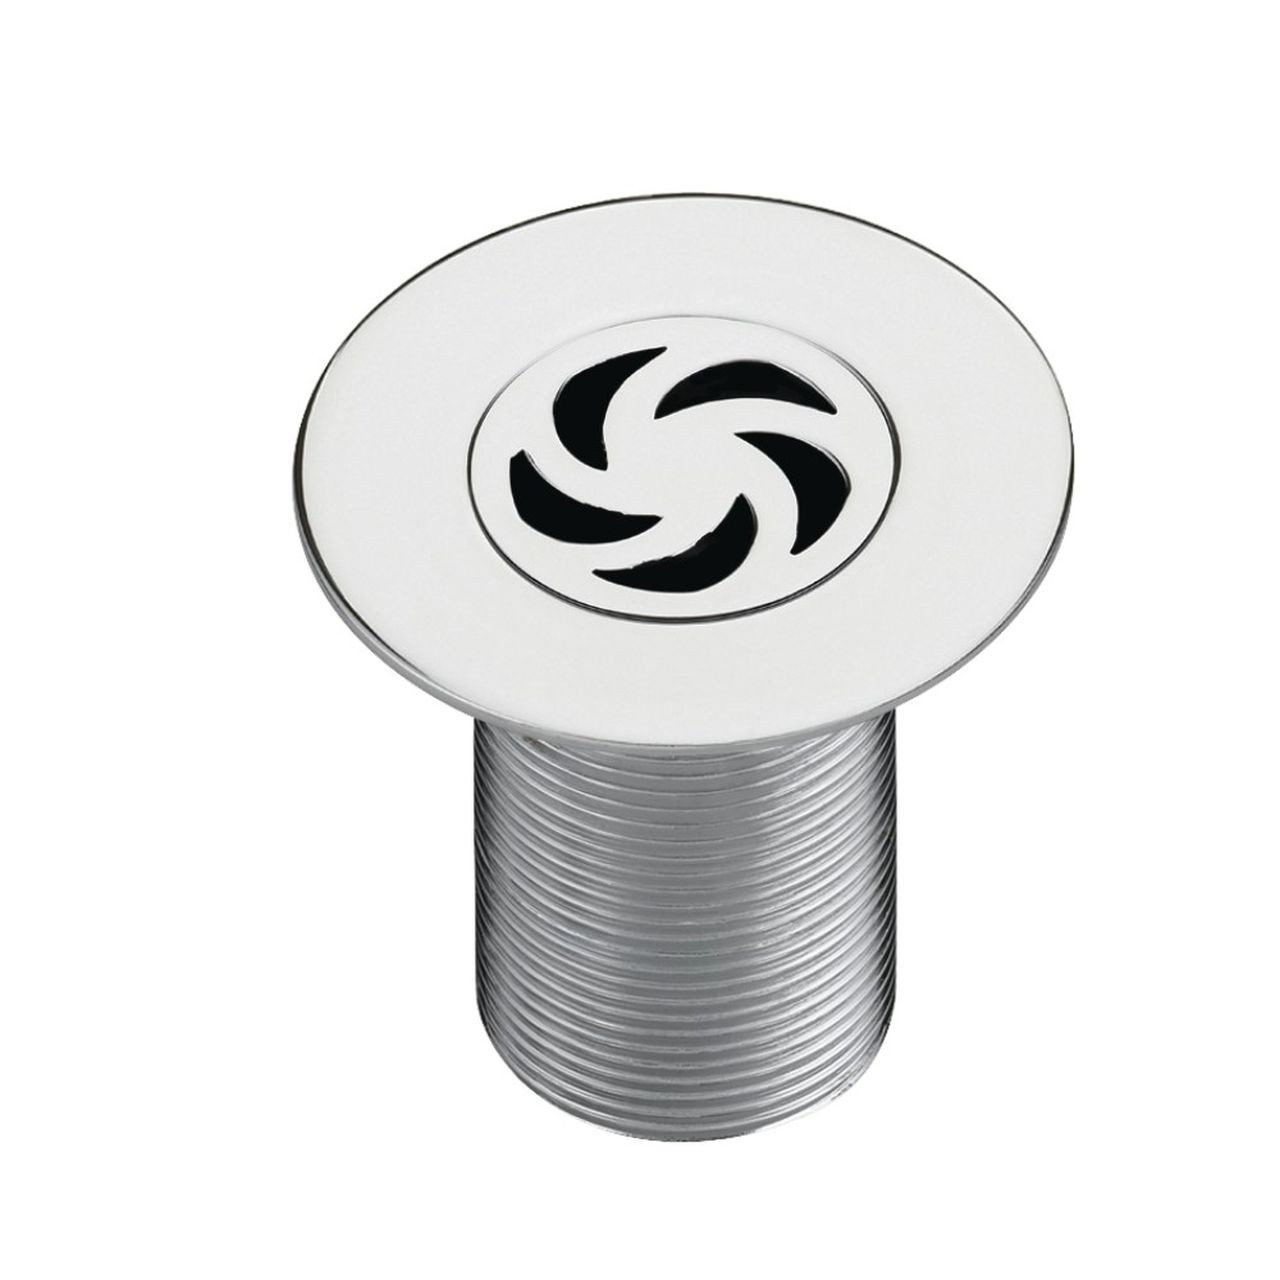 Bristan Chrome 1 1/2 Inch Shower Waste with 85mm Flange - W-SHW4-C